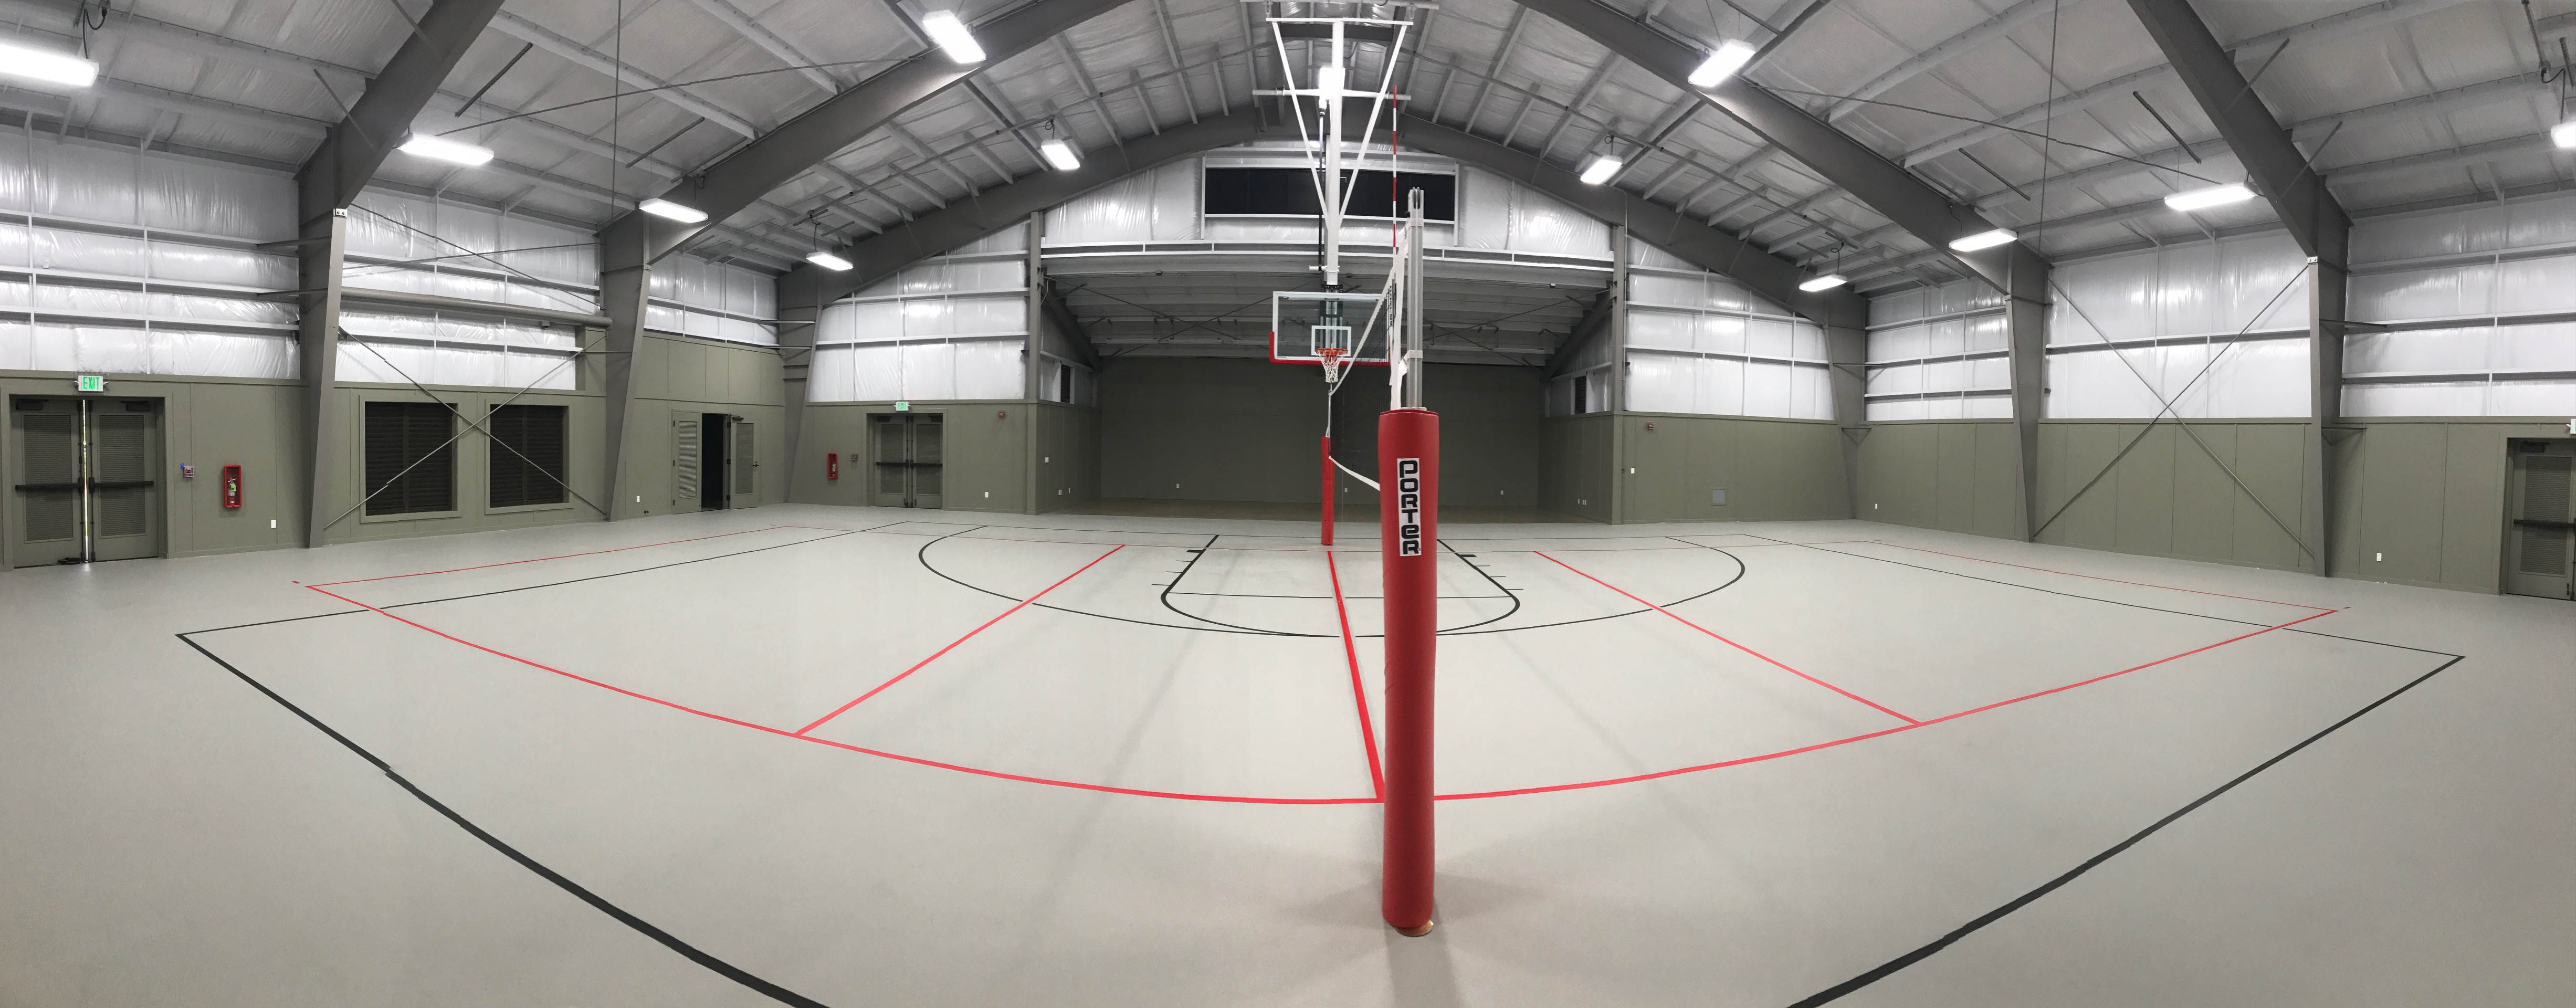 photo of Hawaii Pacific Academy polyurethane athletic flooring project.